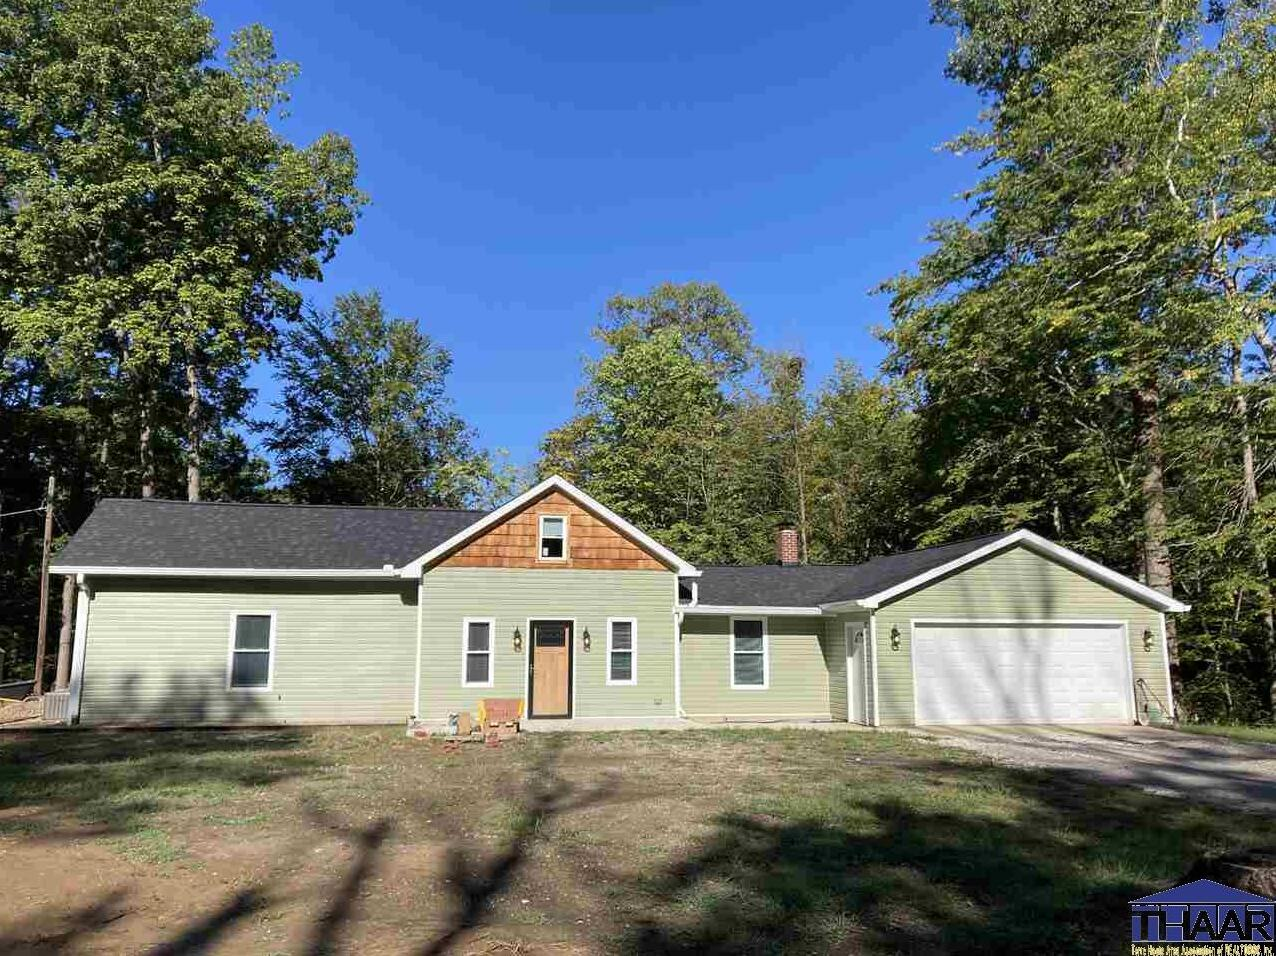 Photo of 3549 Robinson Place West Terre Haute IN 47885